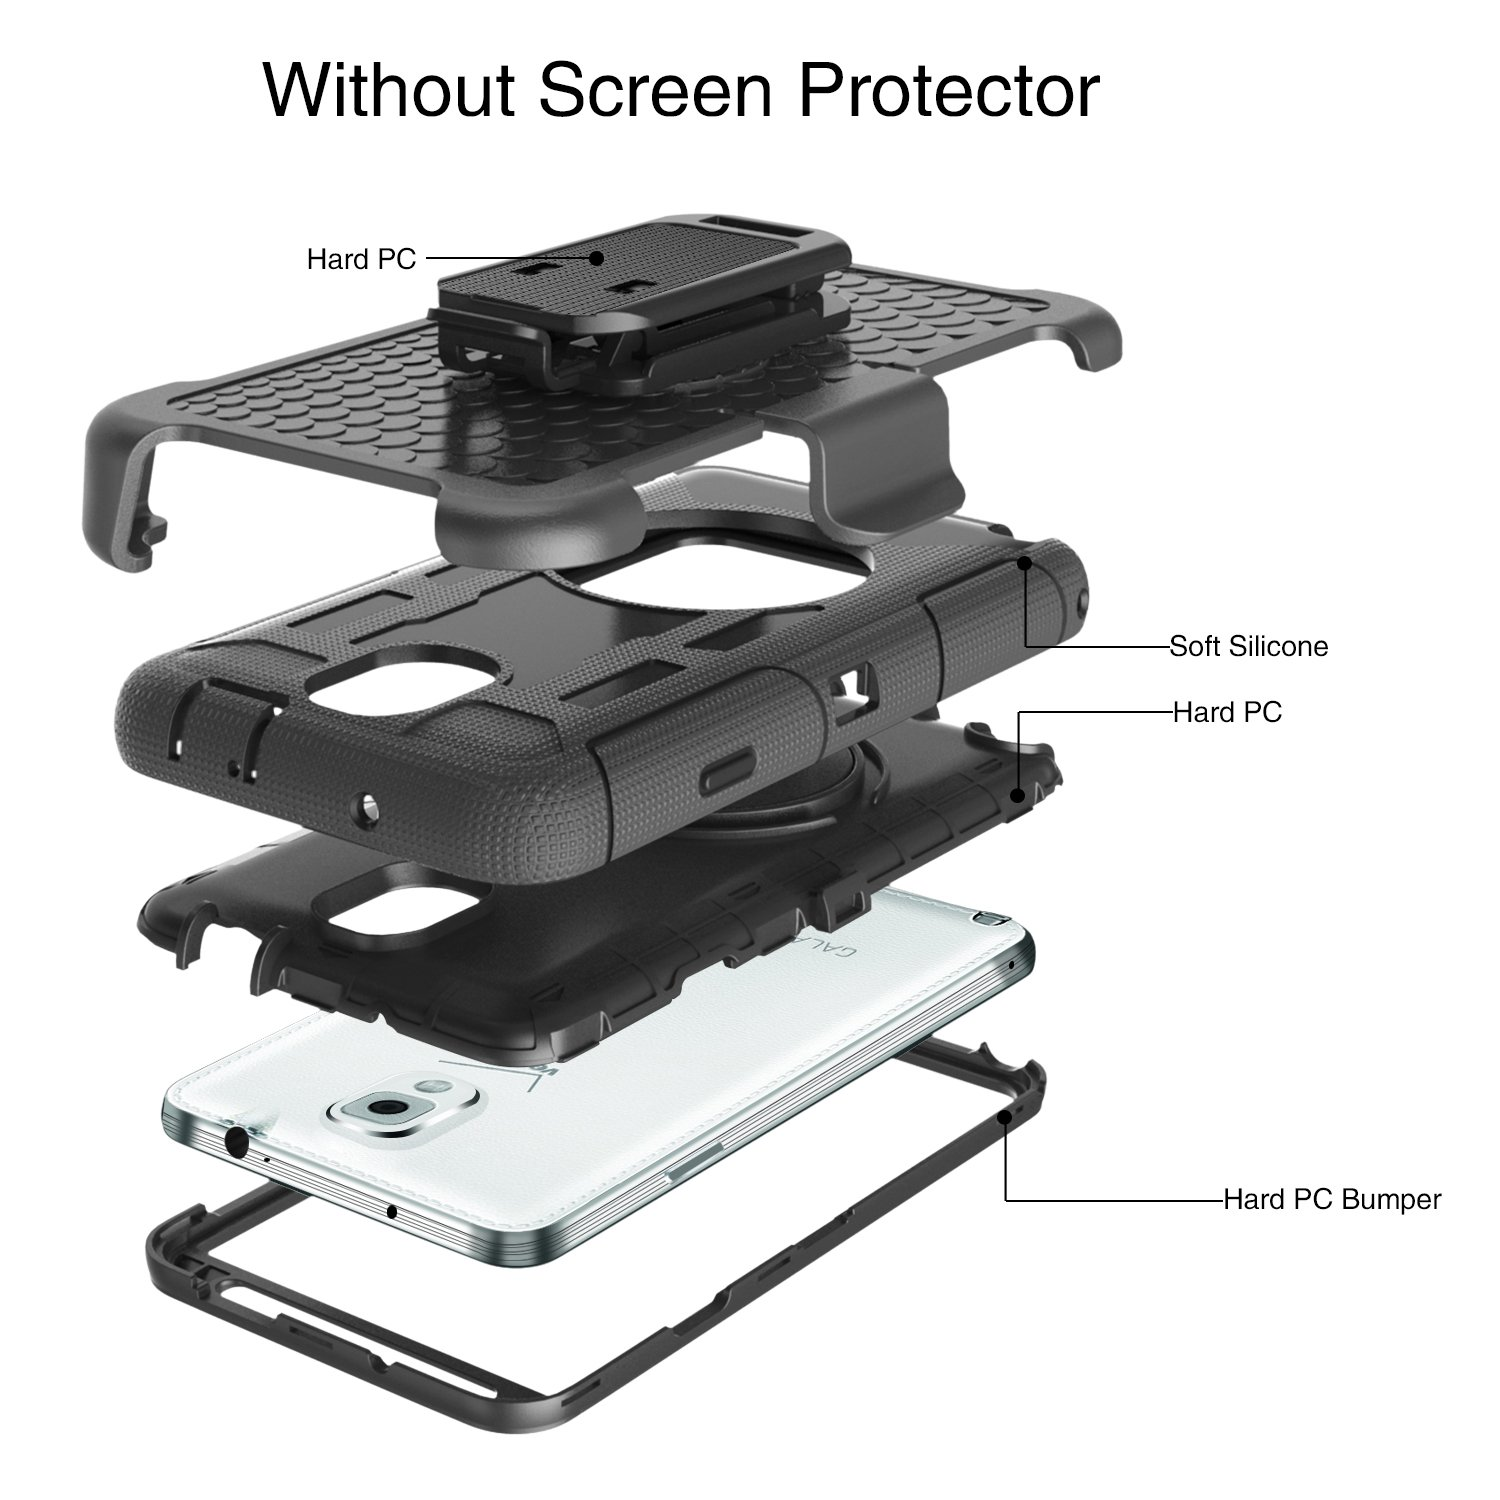 BENTOBEN Samsung Galaxy Note 3 Shockproof Hard Case Cover with Swivel Kickstand Belt Clip Holster Protective Case for Samsung Galaxy Note 3 Note III N9000 All Carriers Black